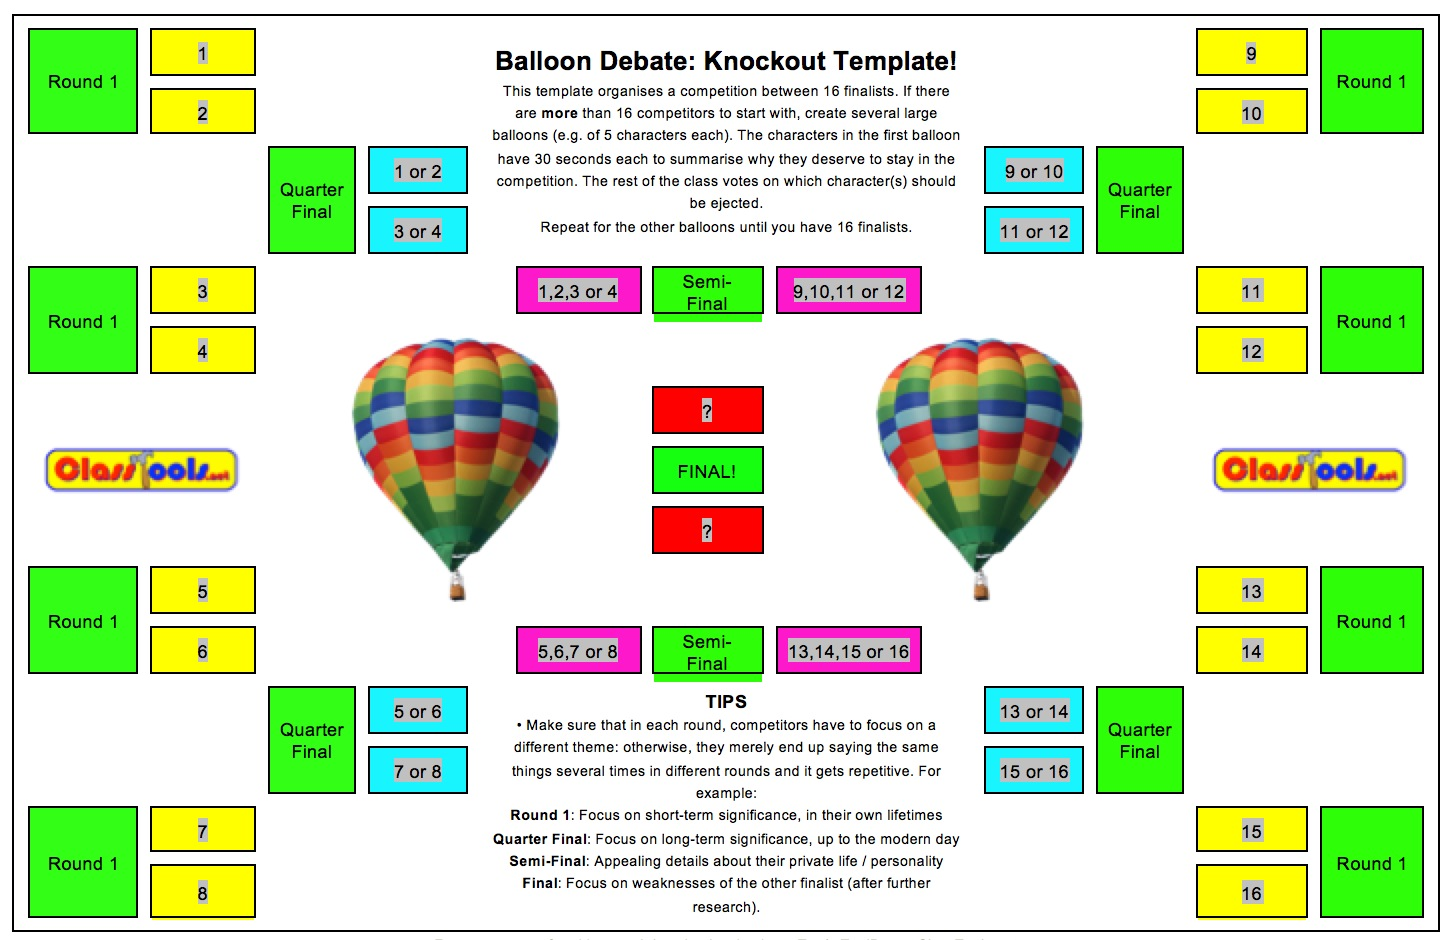 Balloon Debates Templates And Tips